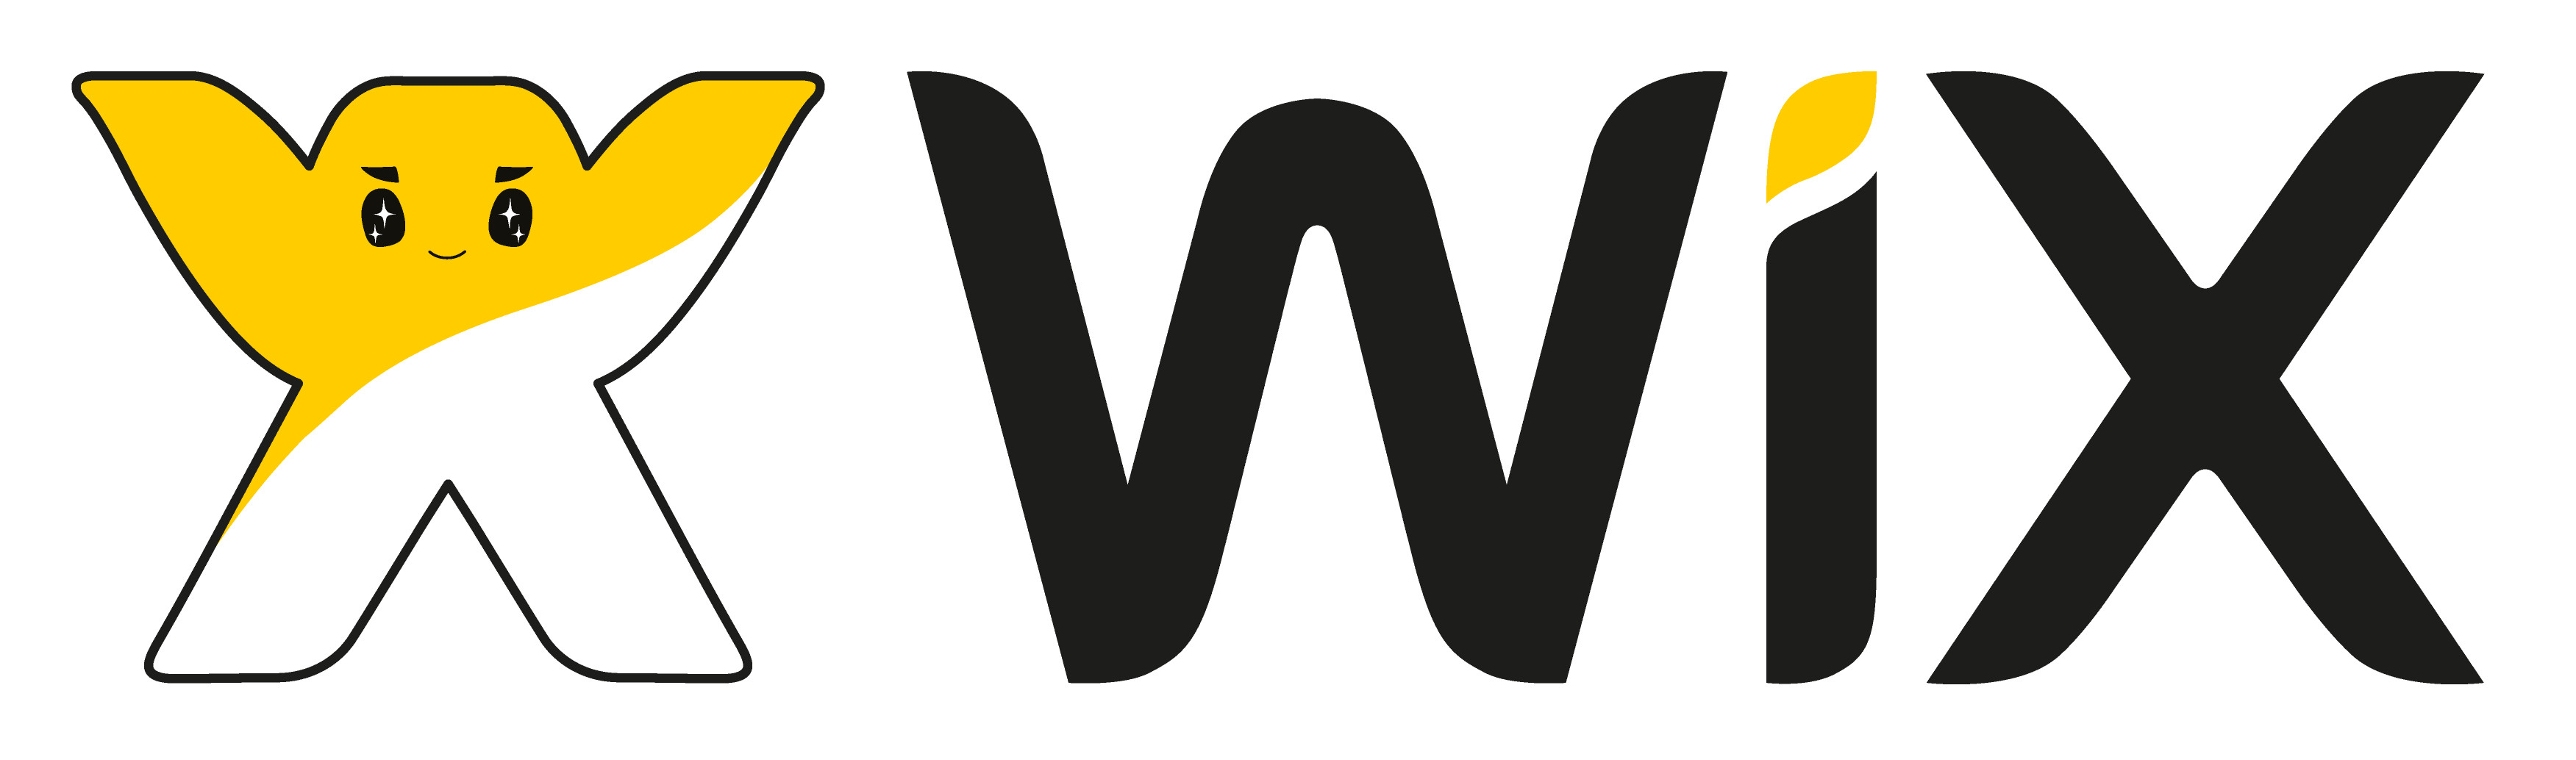 Wix.com Reports Second Quarter 2015 Results